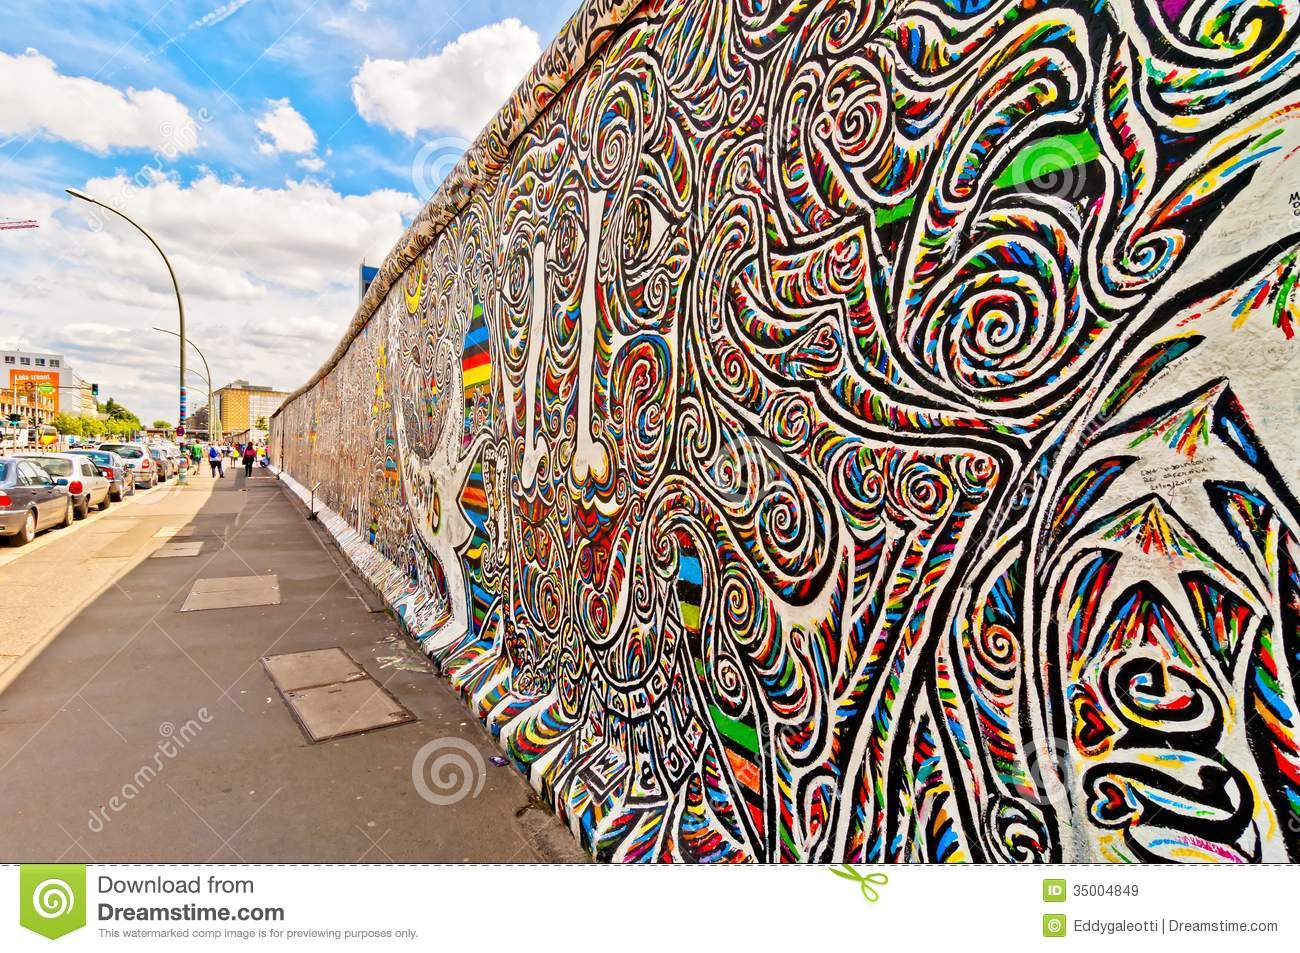 Graffiti Berlin Editorial Image.